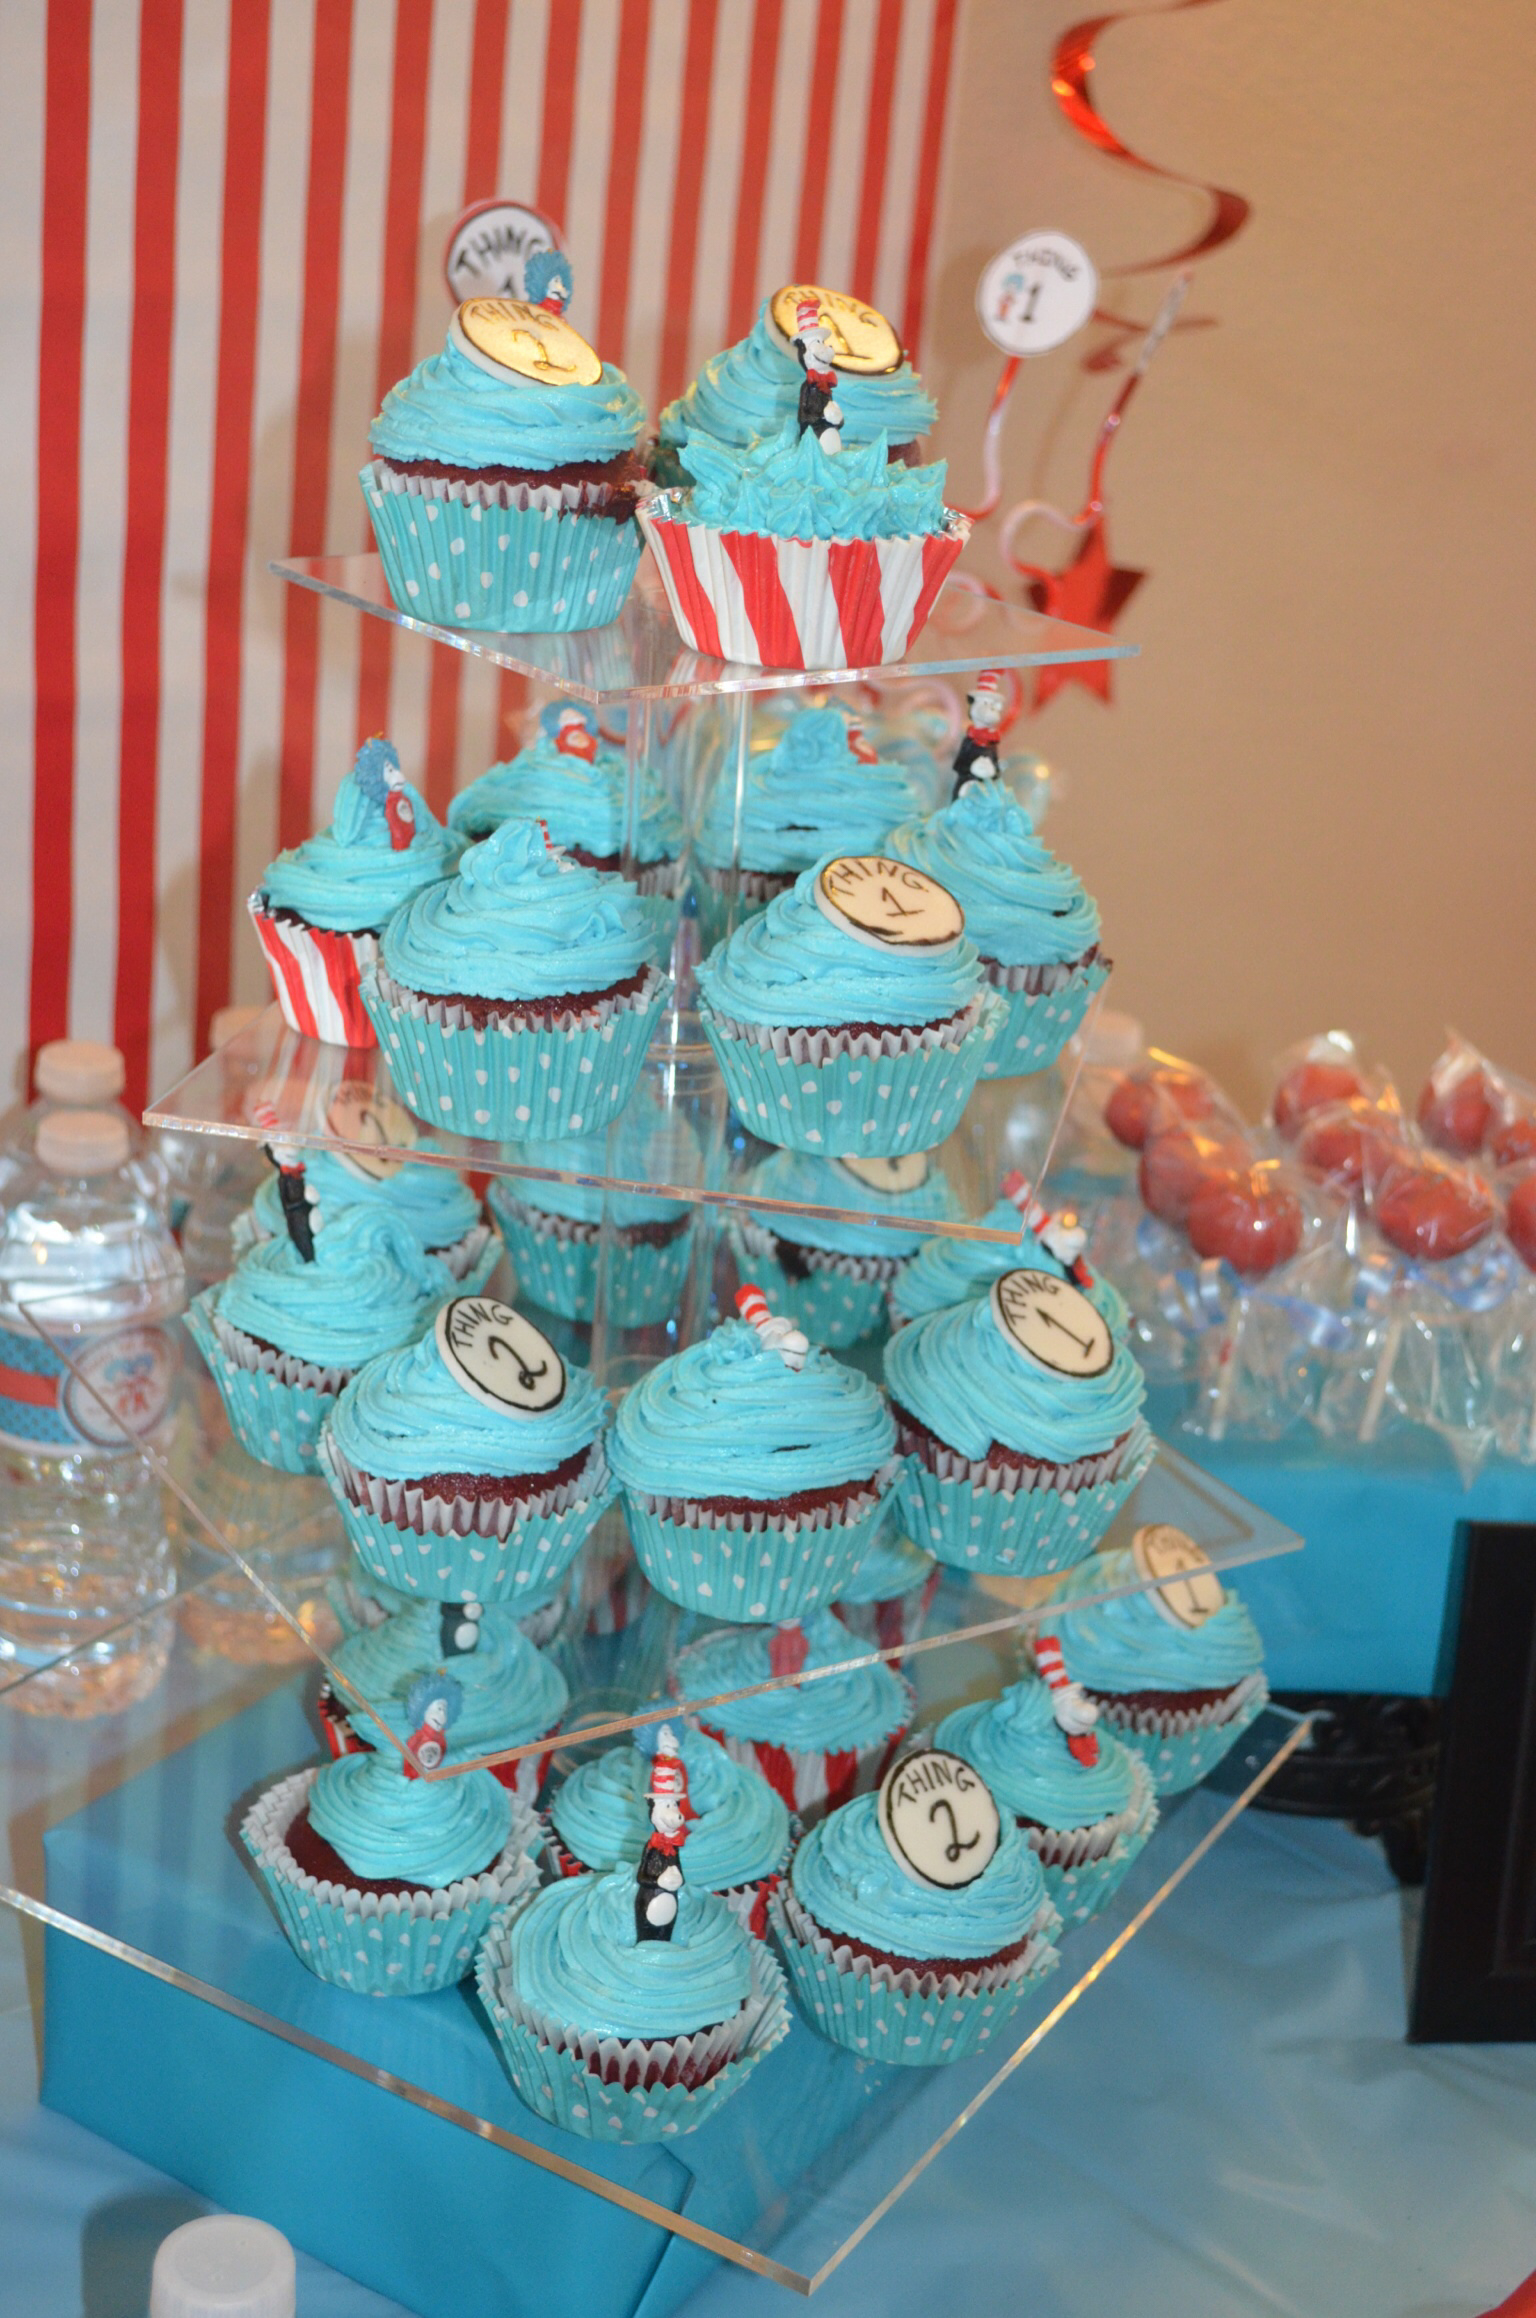 Dr. Seuss Thing 1 Thing 2 Cupcakes